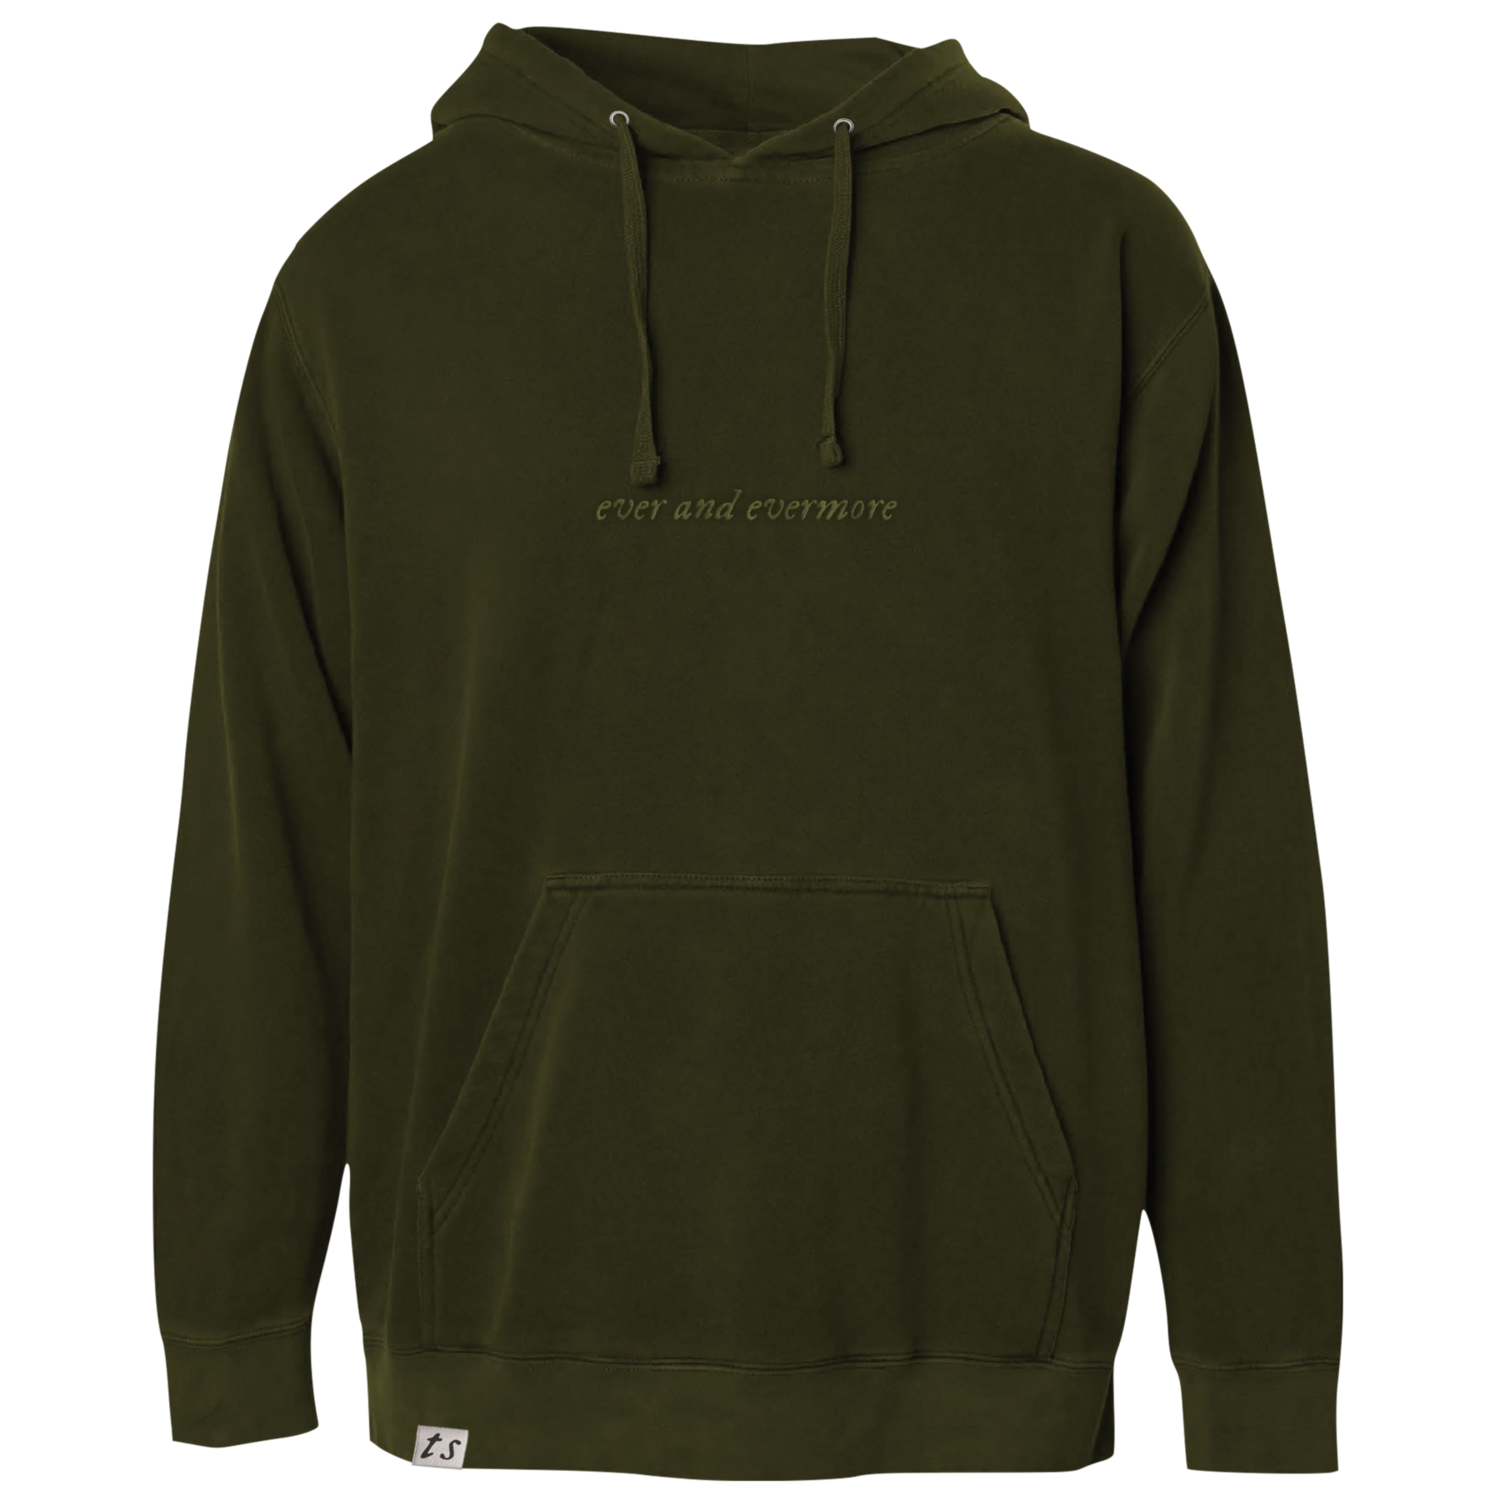 """the """"ever and evermore"""" hoodie"""